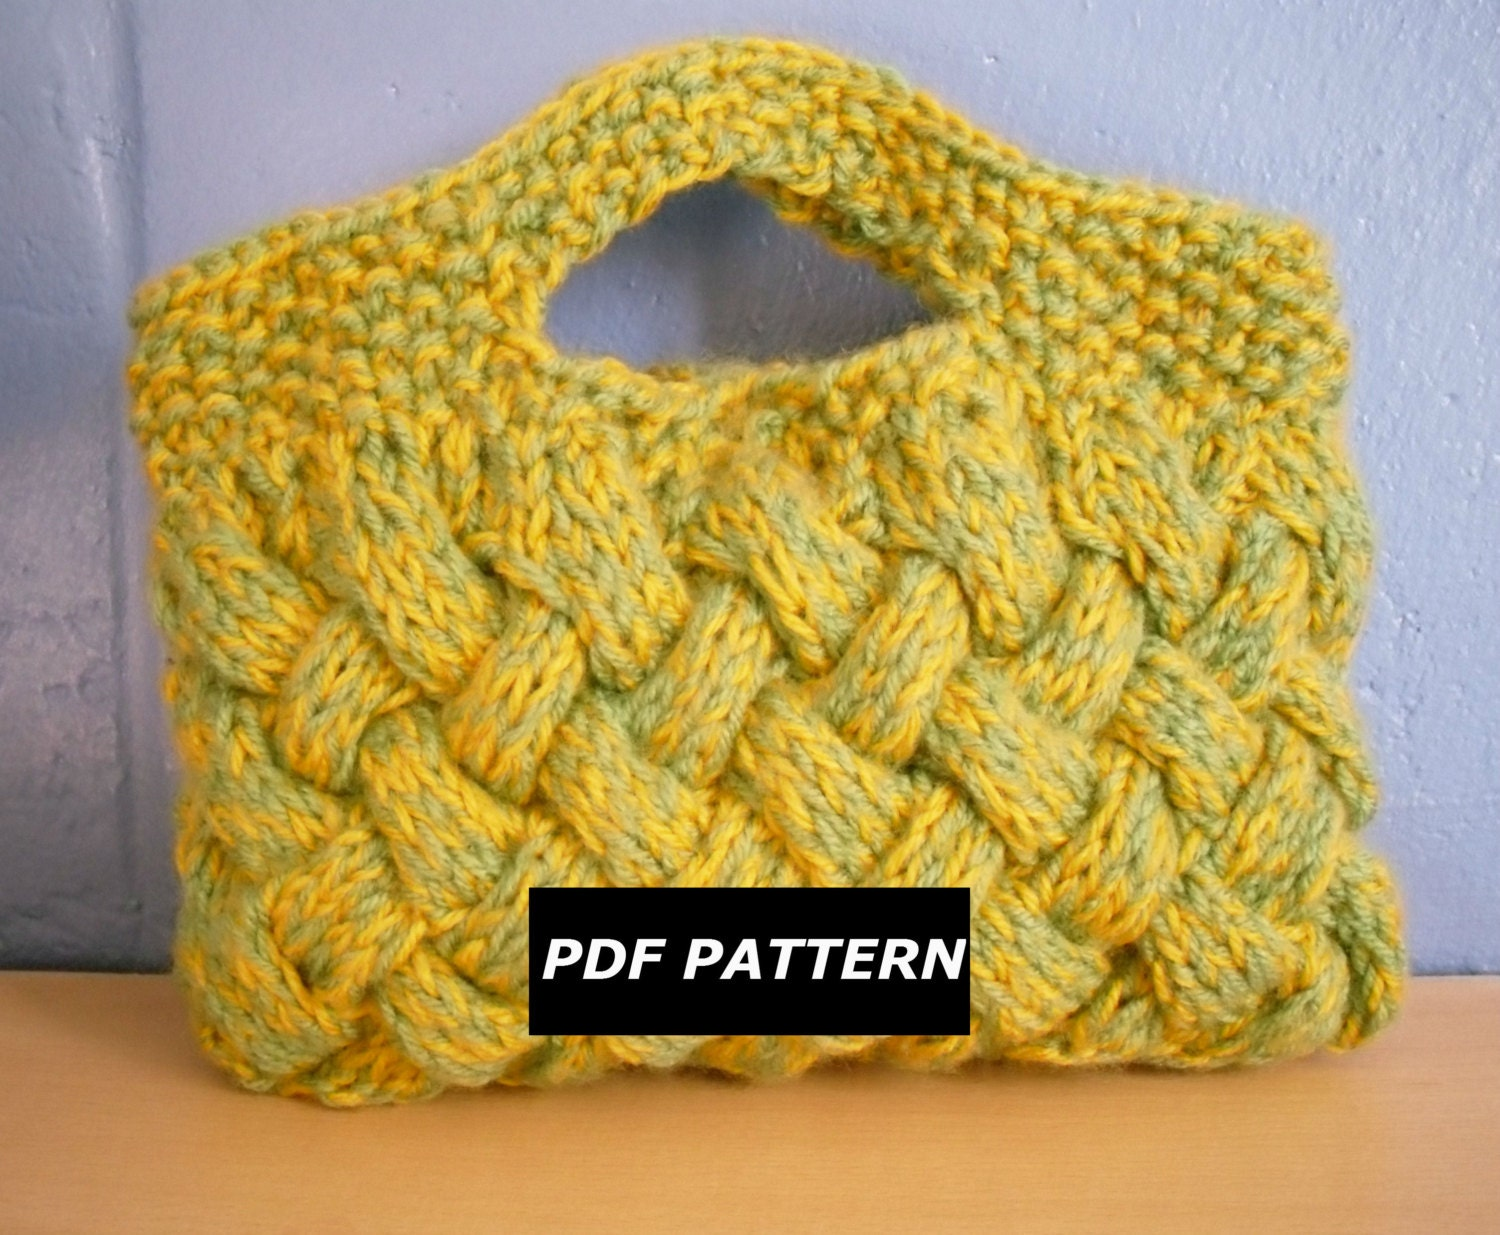 Knitted Clutch Bag Pattern : Knitting Pattern Woven Cable Clutch Bag